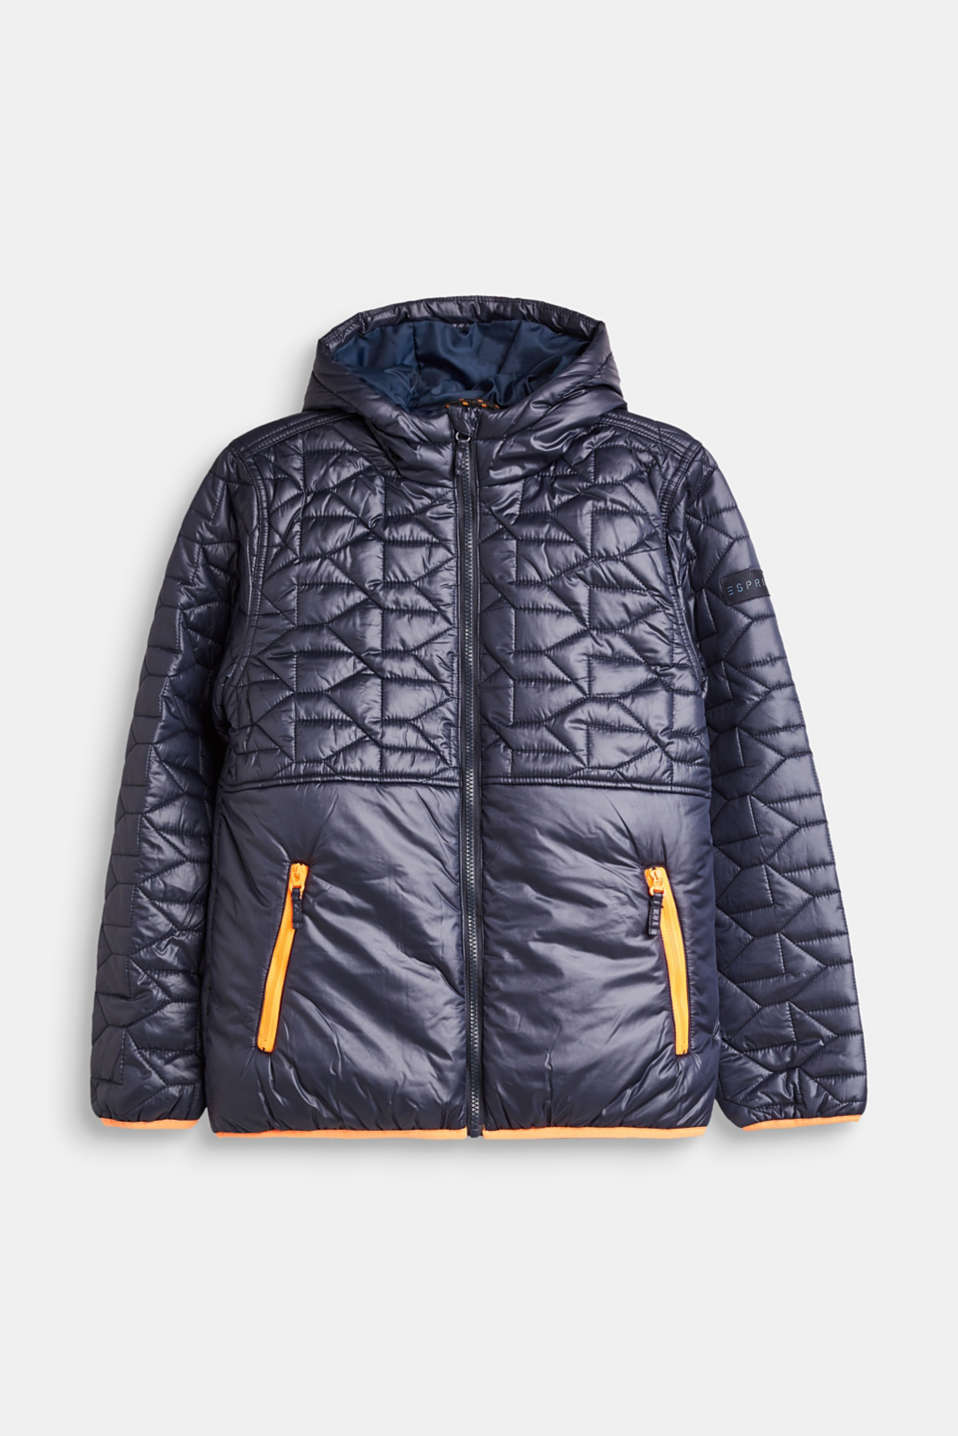 Esprit - Padded, quilted jacket with neon details